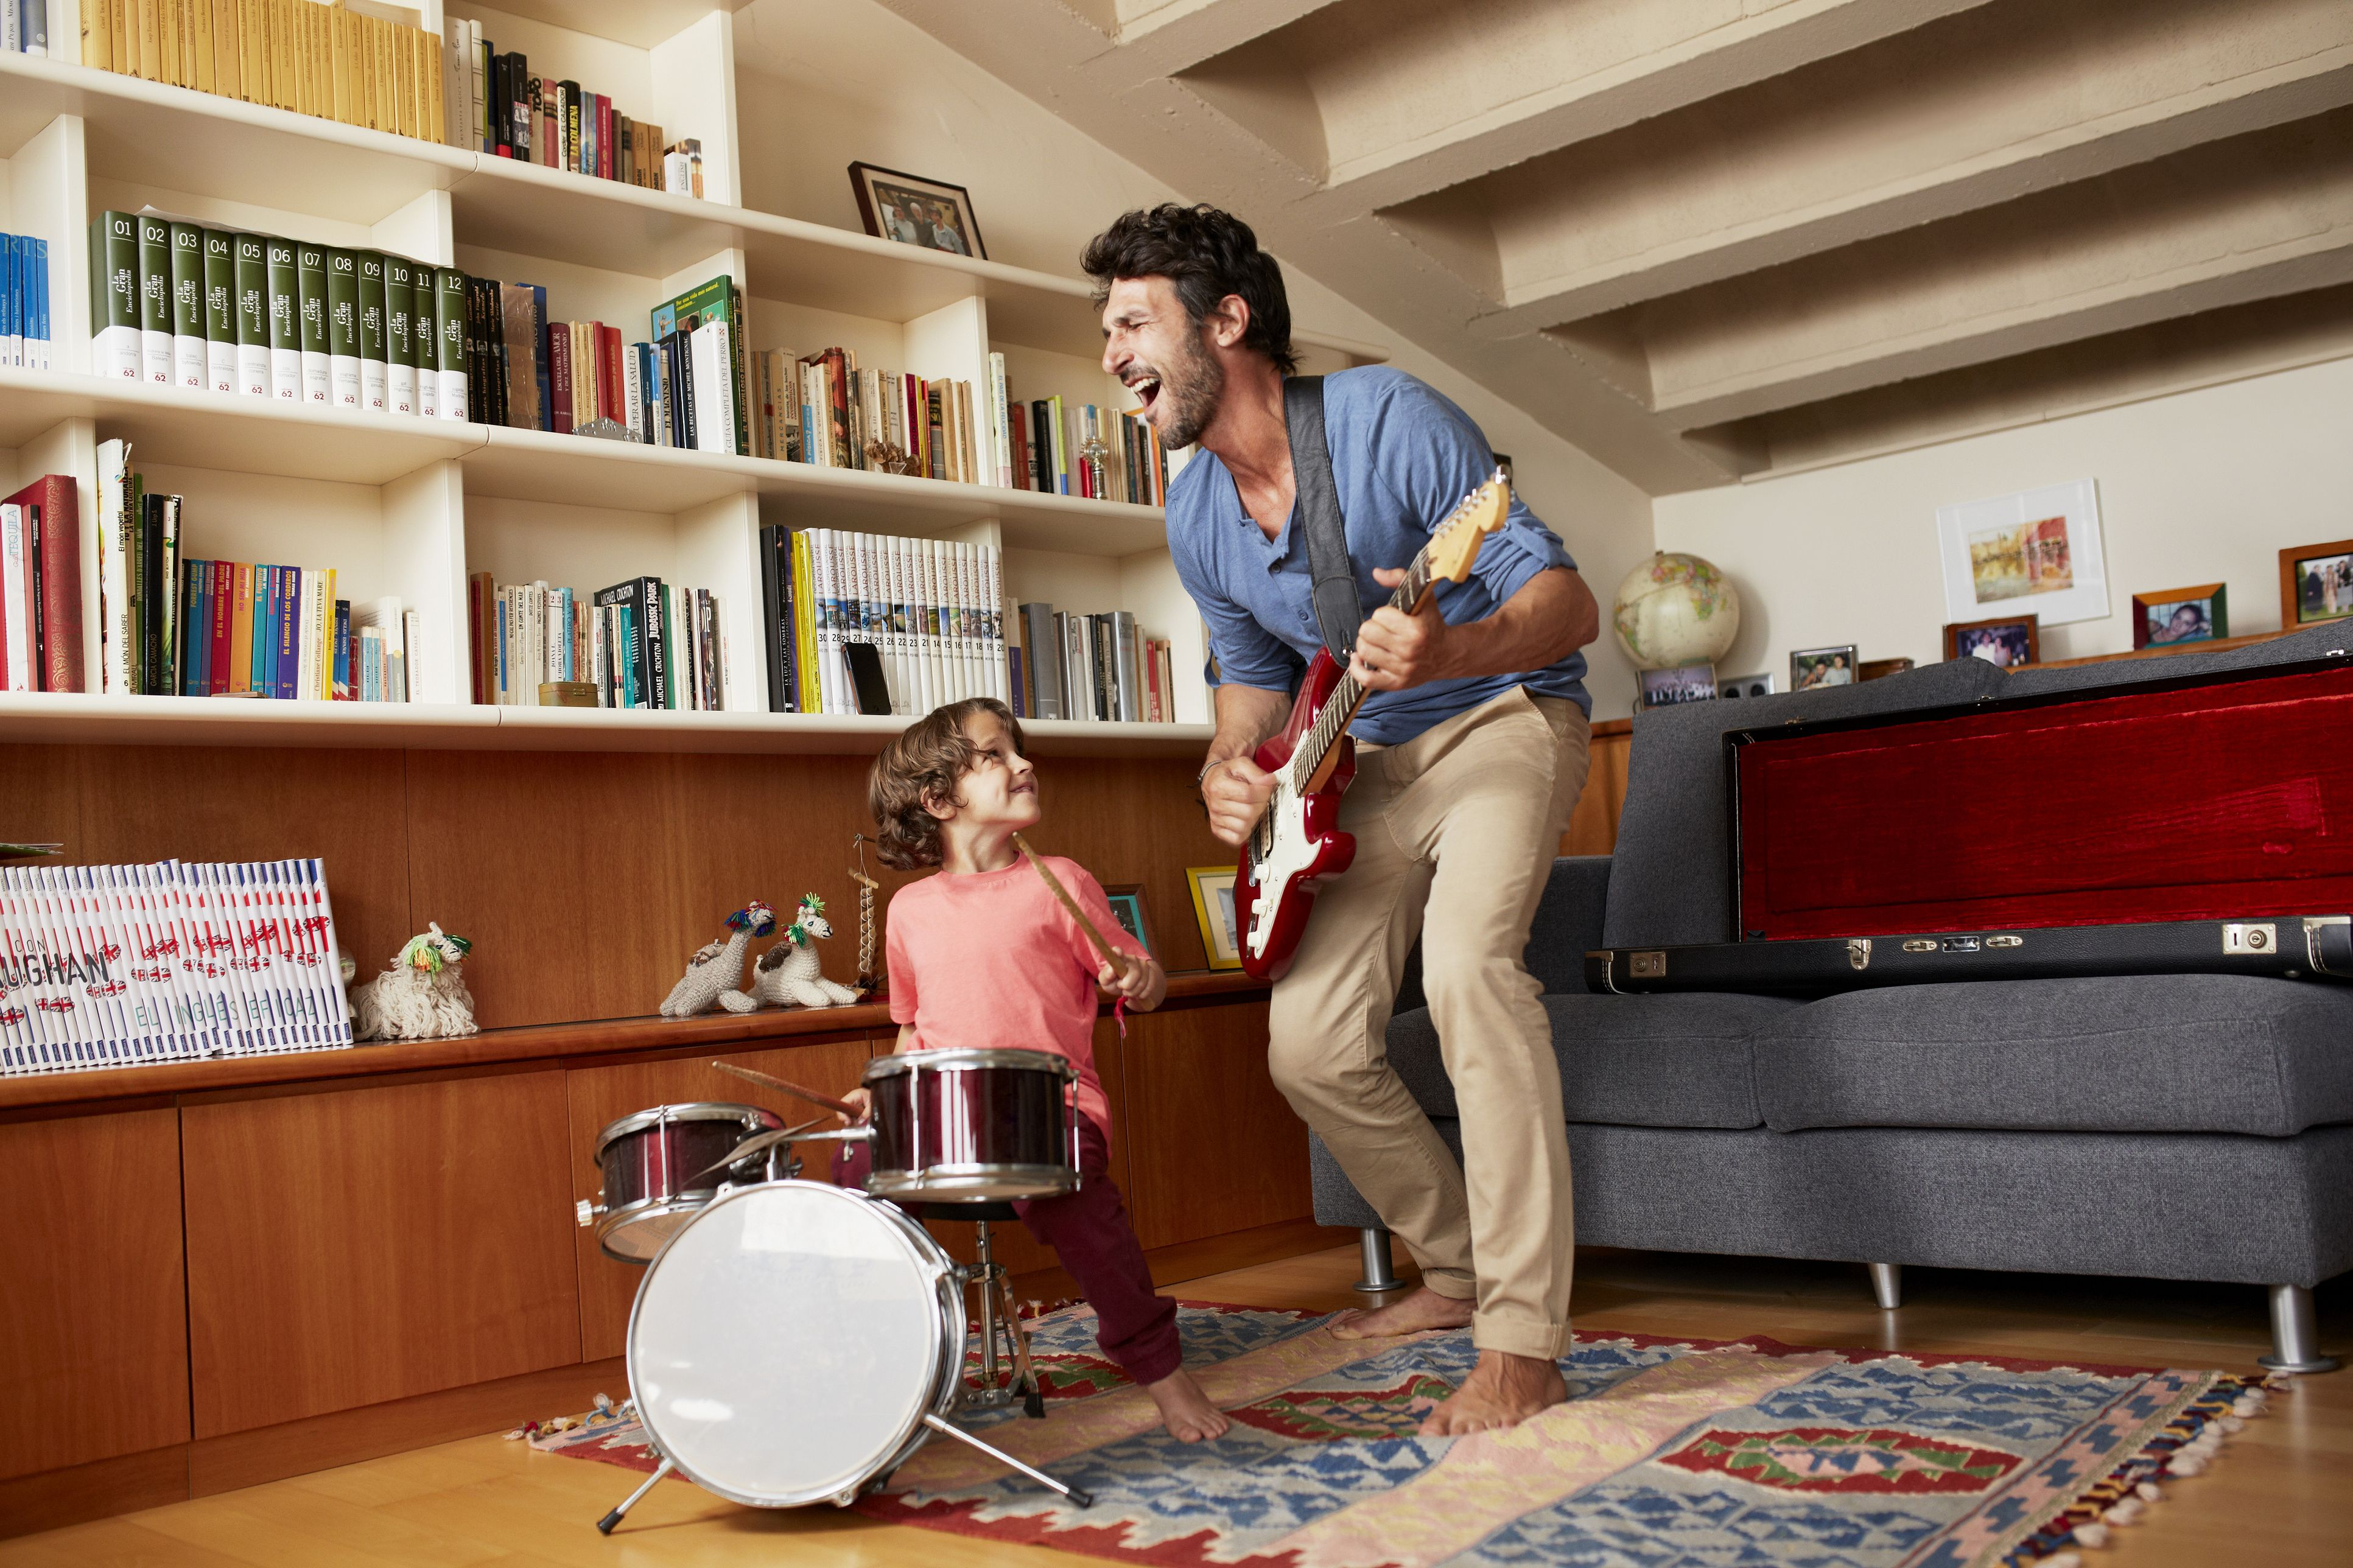 Father and son playing musical instruments in a living room